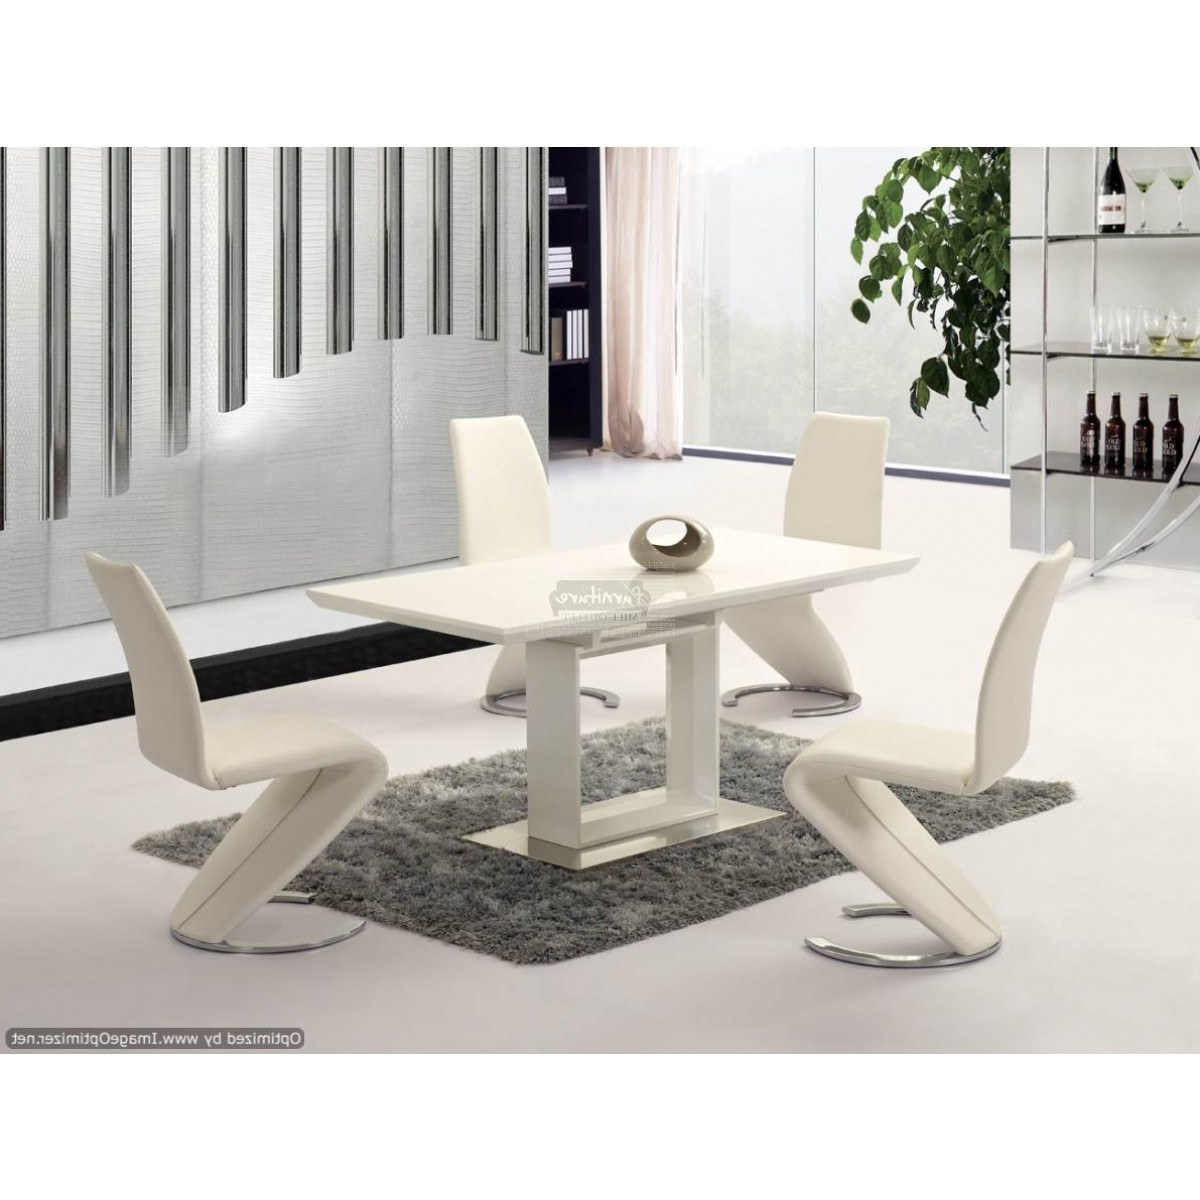 White Gloss Extendable Dining Tables Throughout Most Recent Space White High Gloss Extending Dining Table – 120Cm To 160Cm (View 21 of 25)